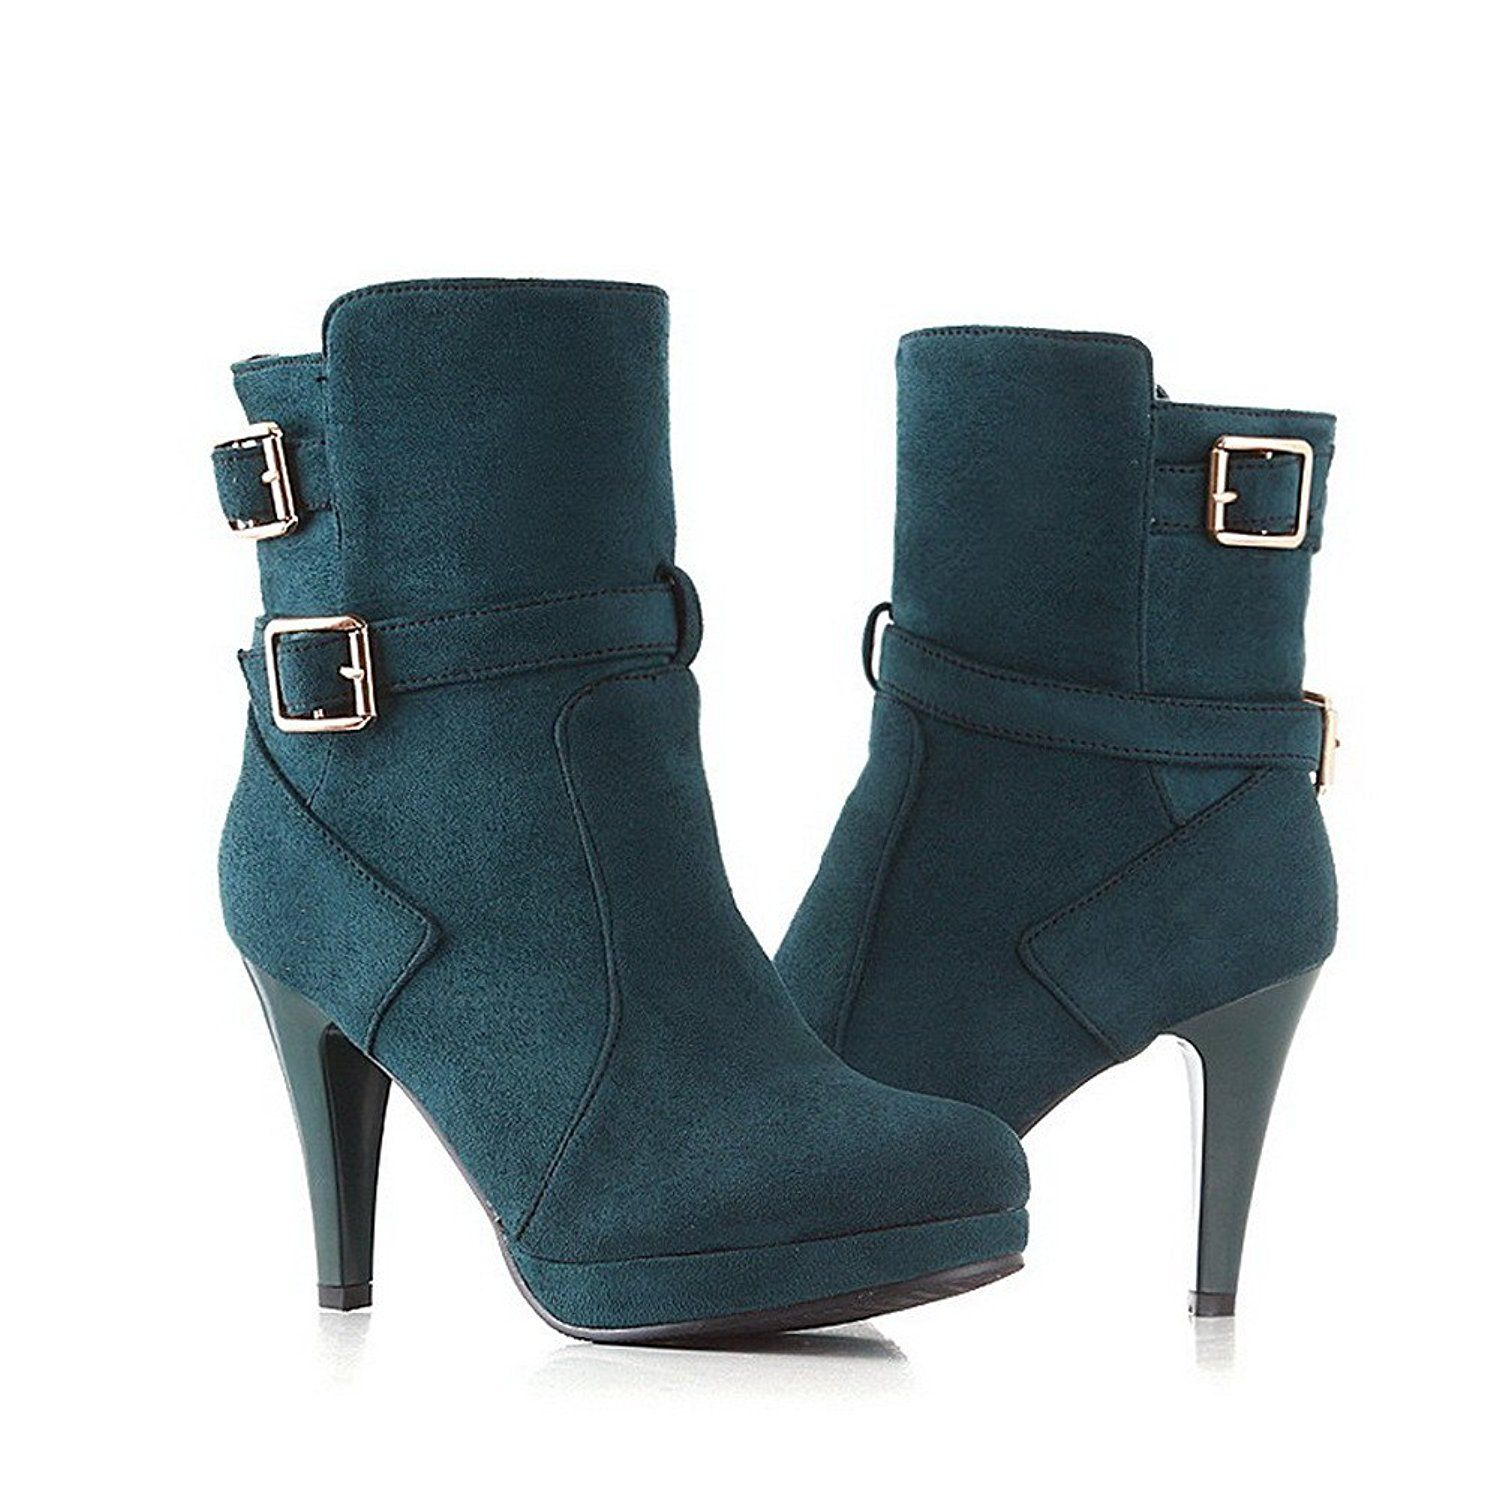 Weipoot Ladys Closed Round Toe Kitten Heel Frosted Solid Boots With Metal Buckles Can T Believe It S Available See It Now Work Boo Boots Heels Work Boots